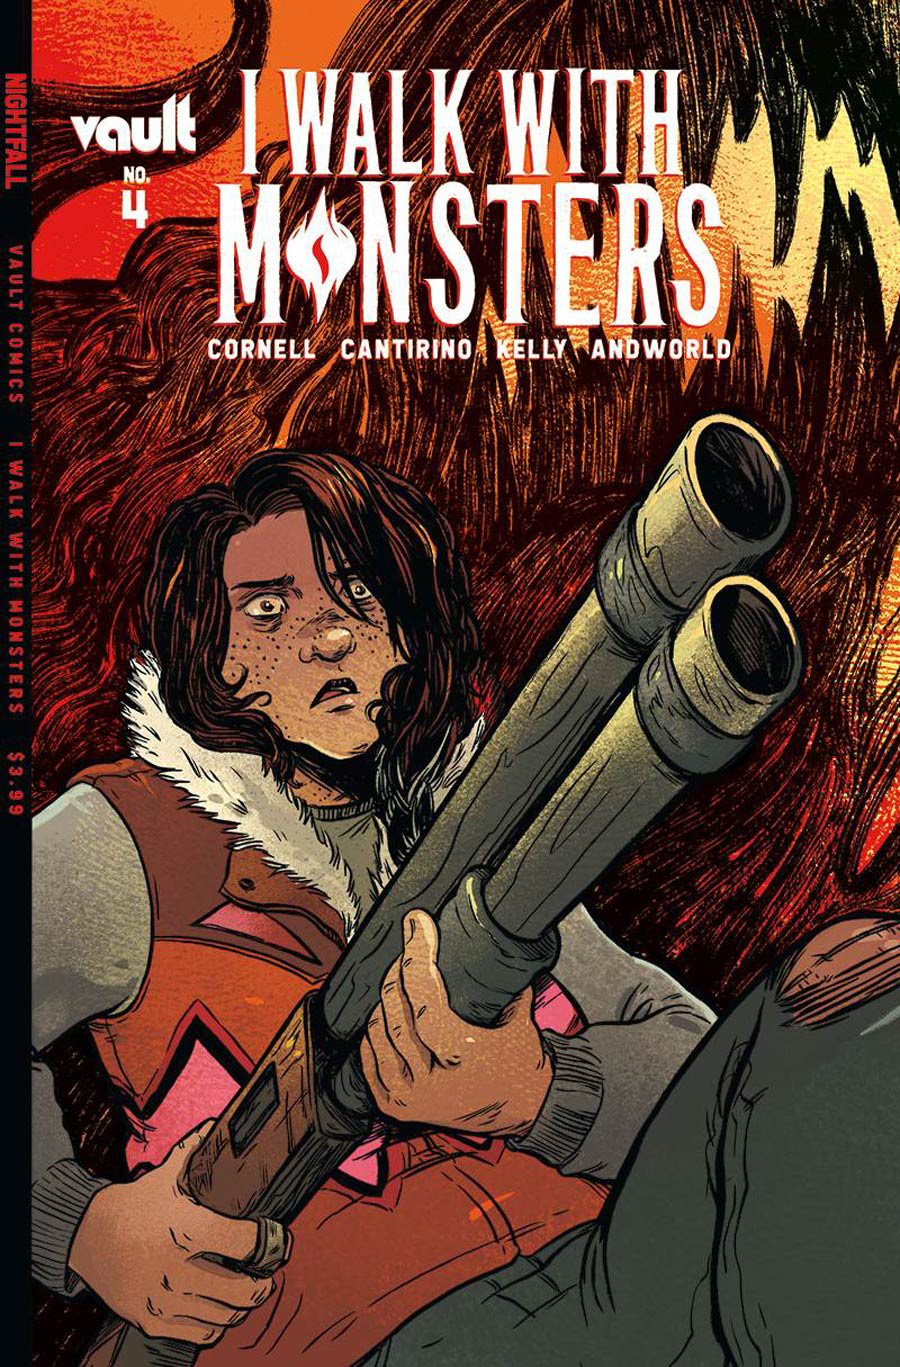 I Walk With Monsters #4 Cover A Regular Sally Cantirino Cover